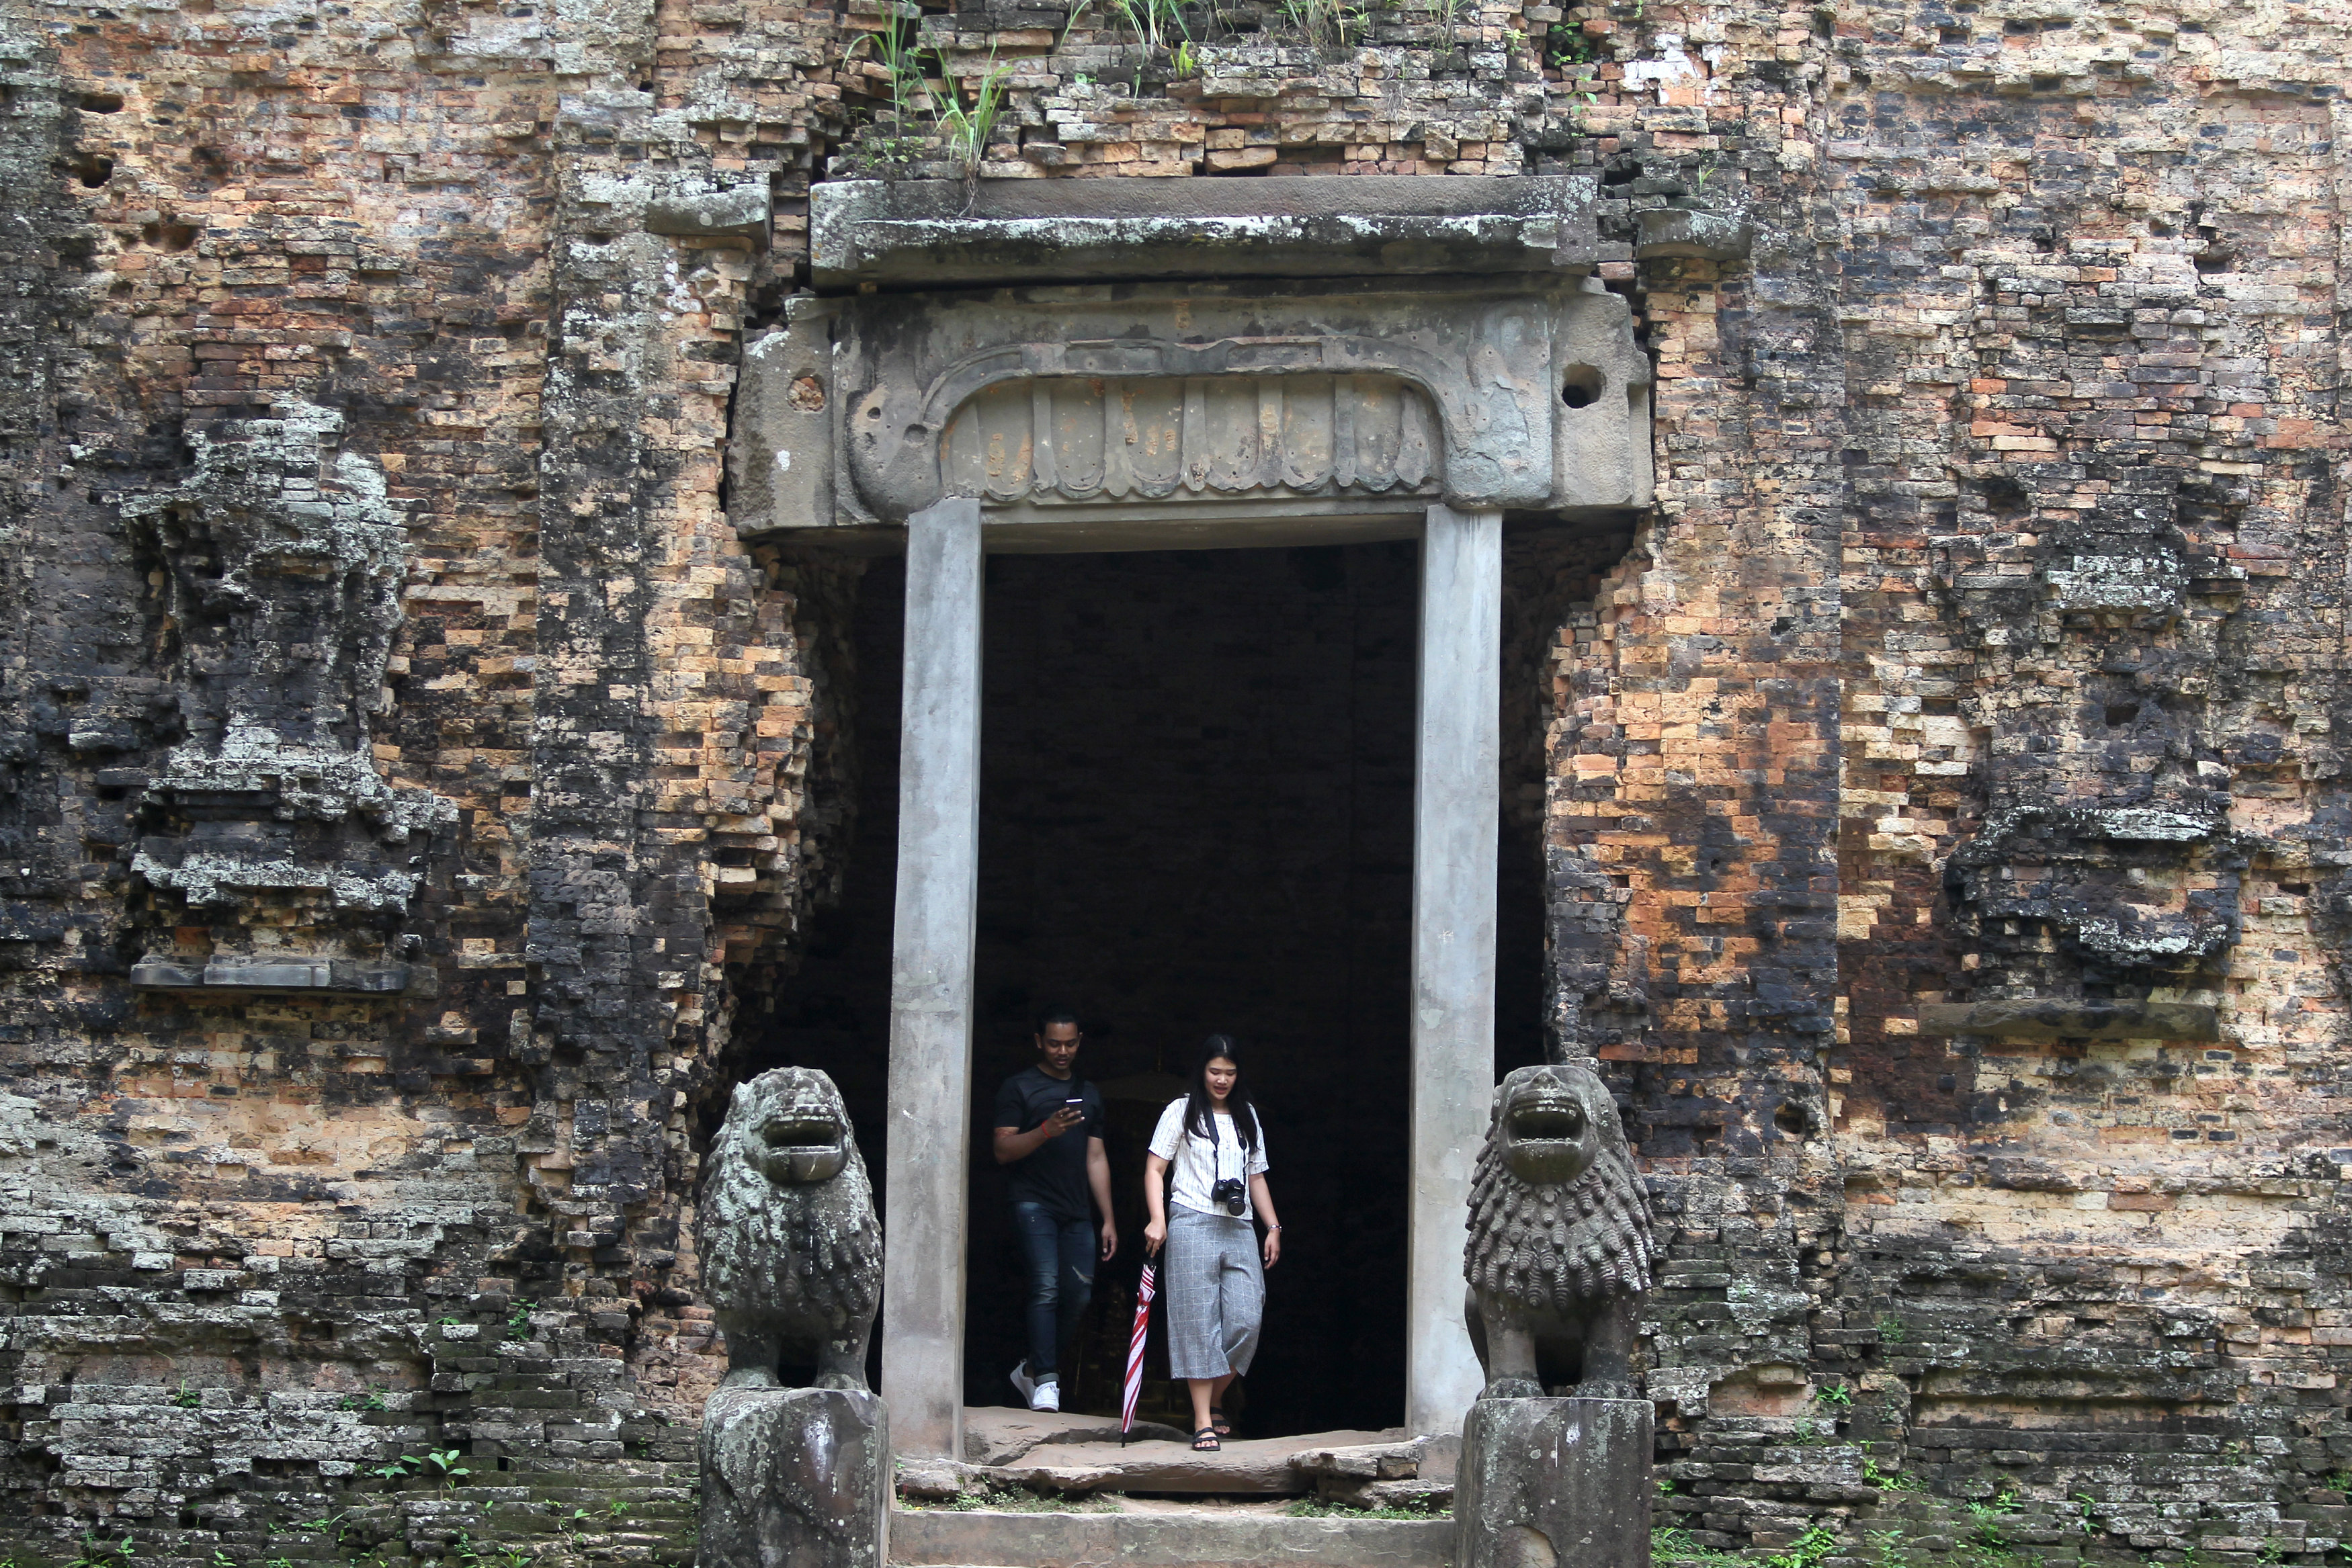 In pictures: Cambodia's new world heritage site